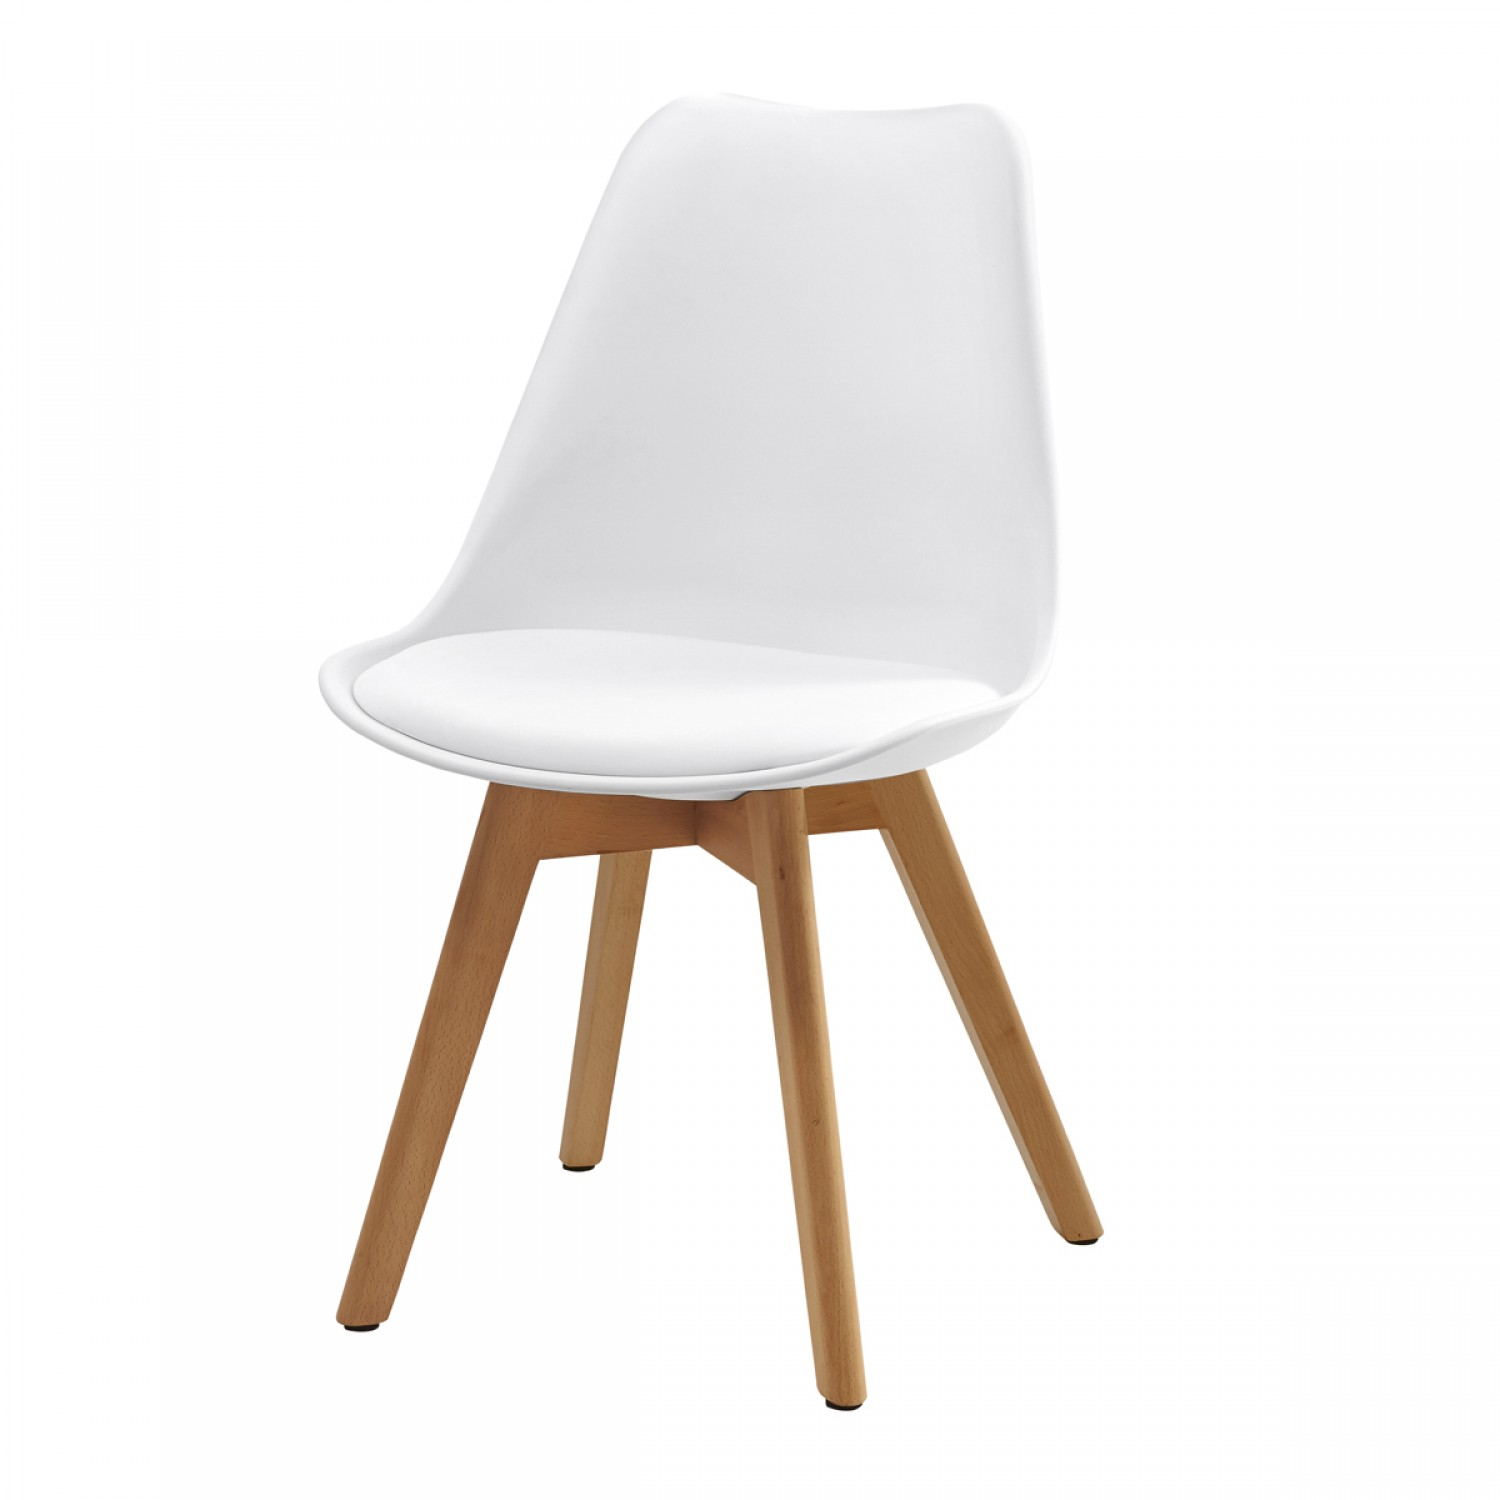 Chaise Blanche Scandinave Chaise Scandinave Blanche Lot De 2 Koya Design